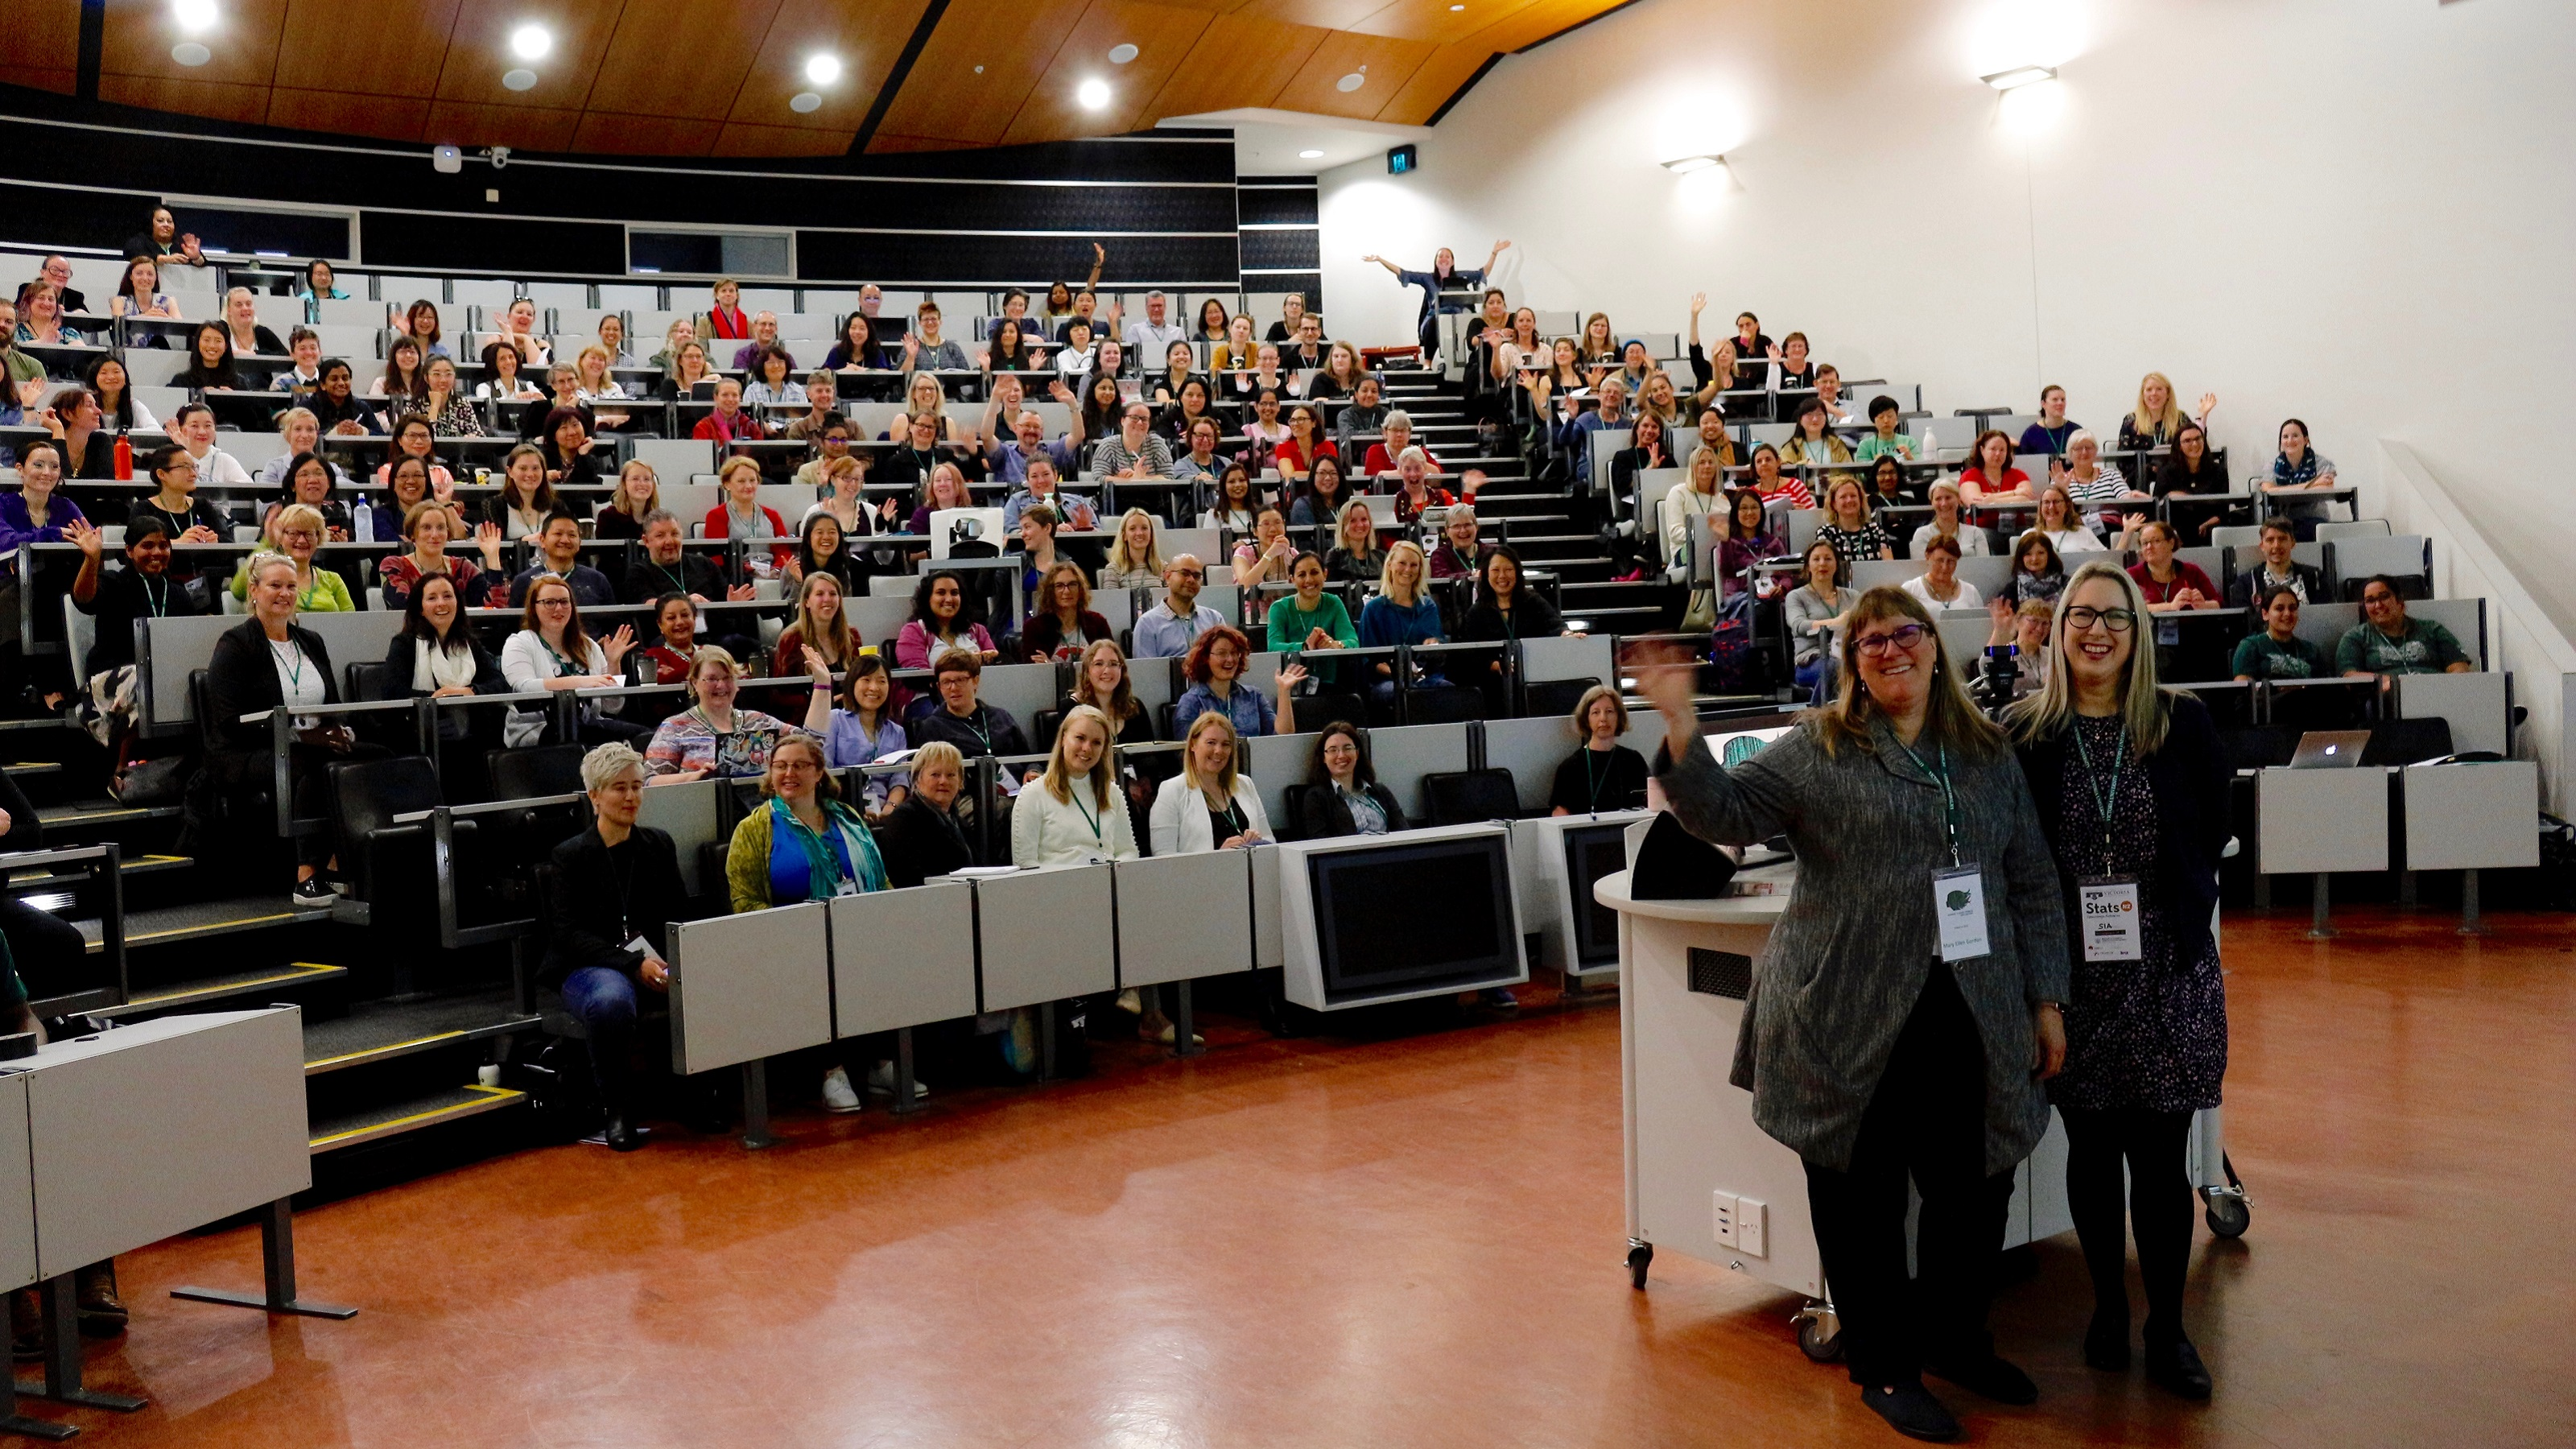 Attendees at the Wellington WiDS conference